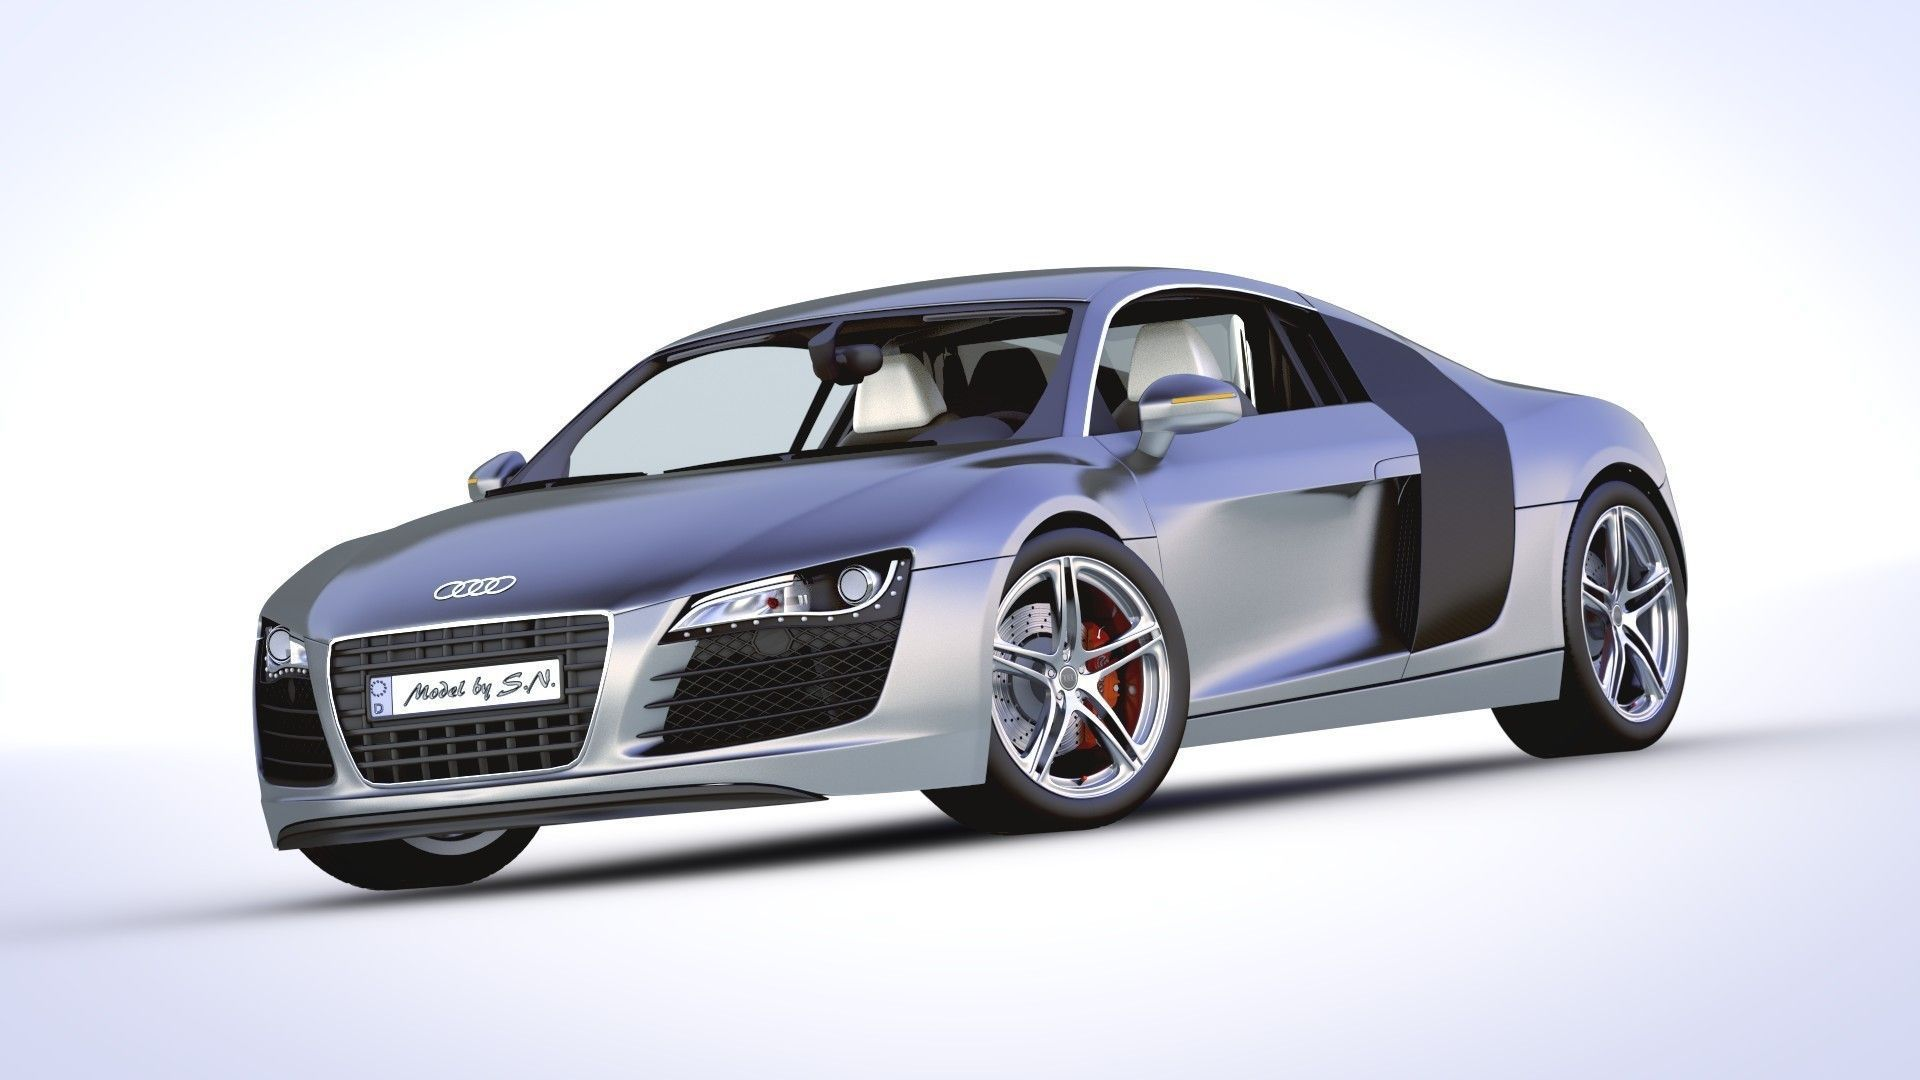 audi r8 v8 high quality 3d model obj fbx blend. Black Bedroom Furniture Sets. Home Design Ideas